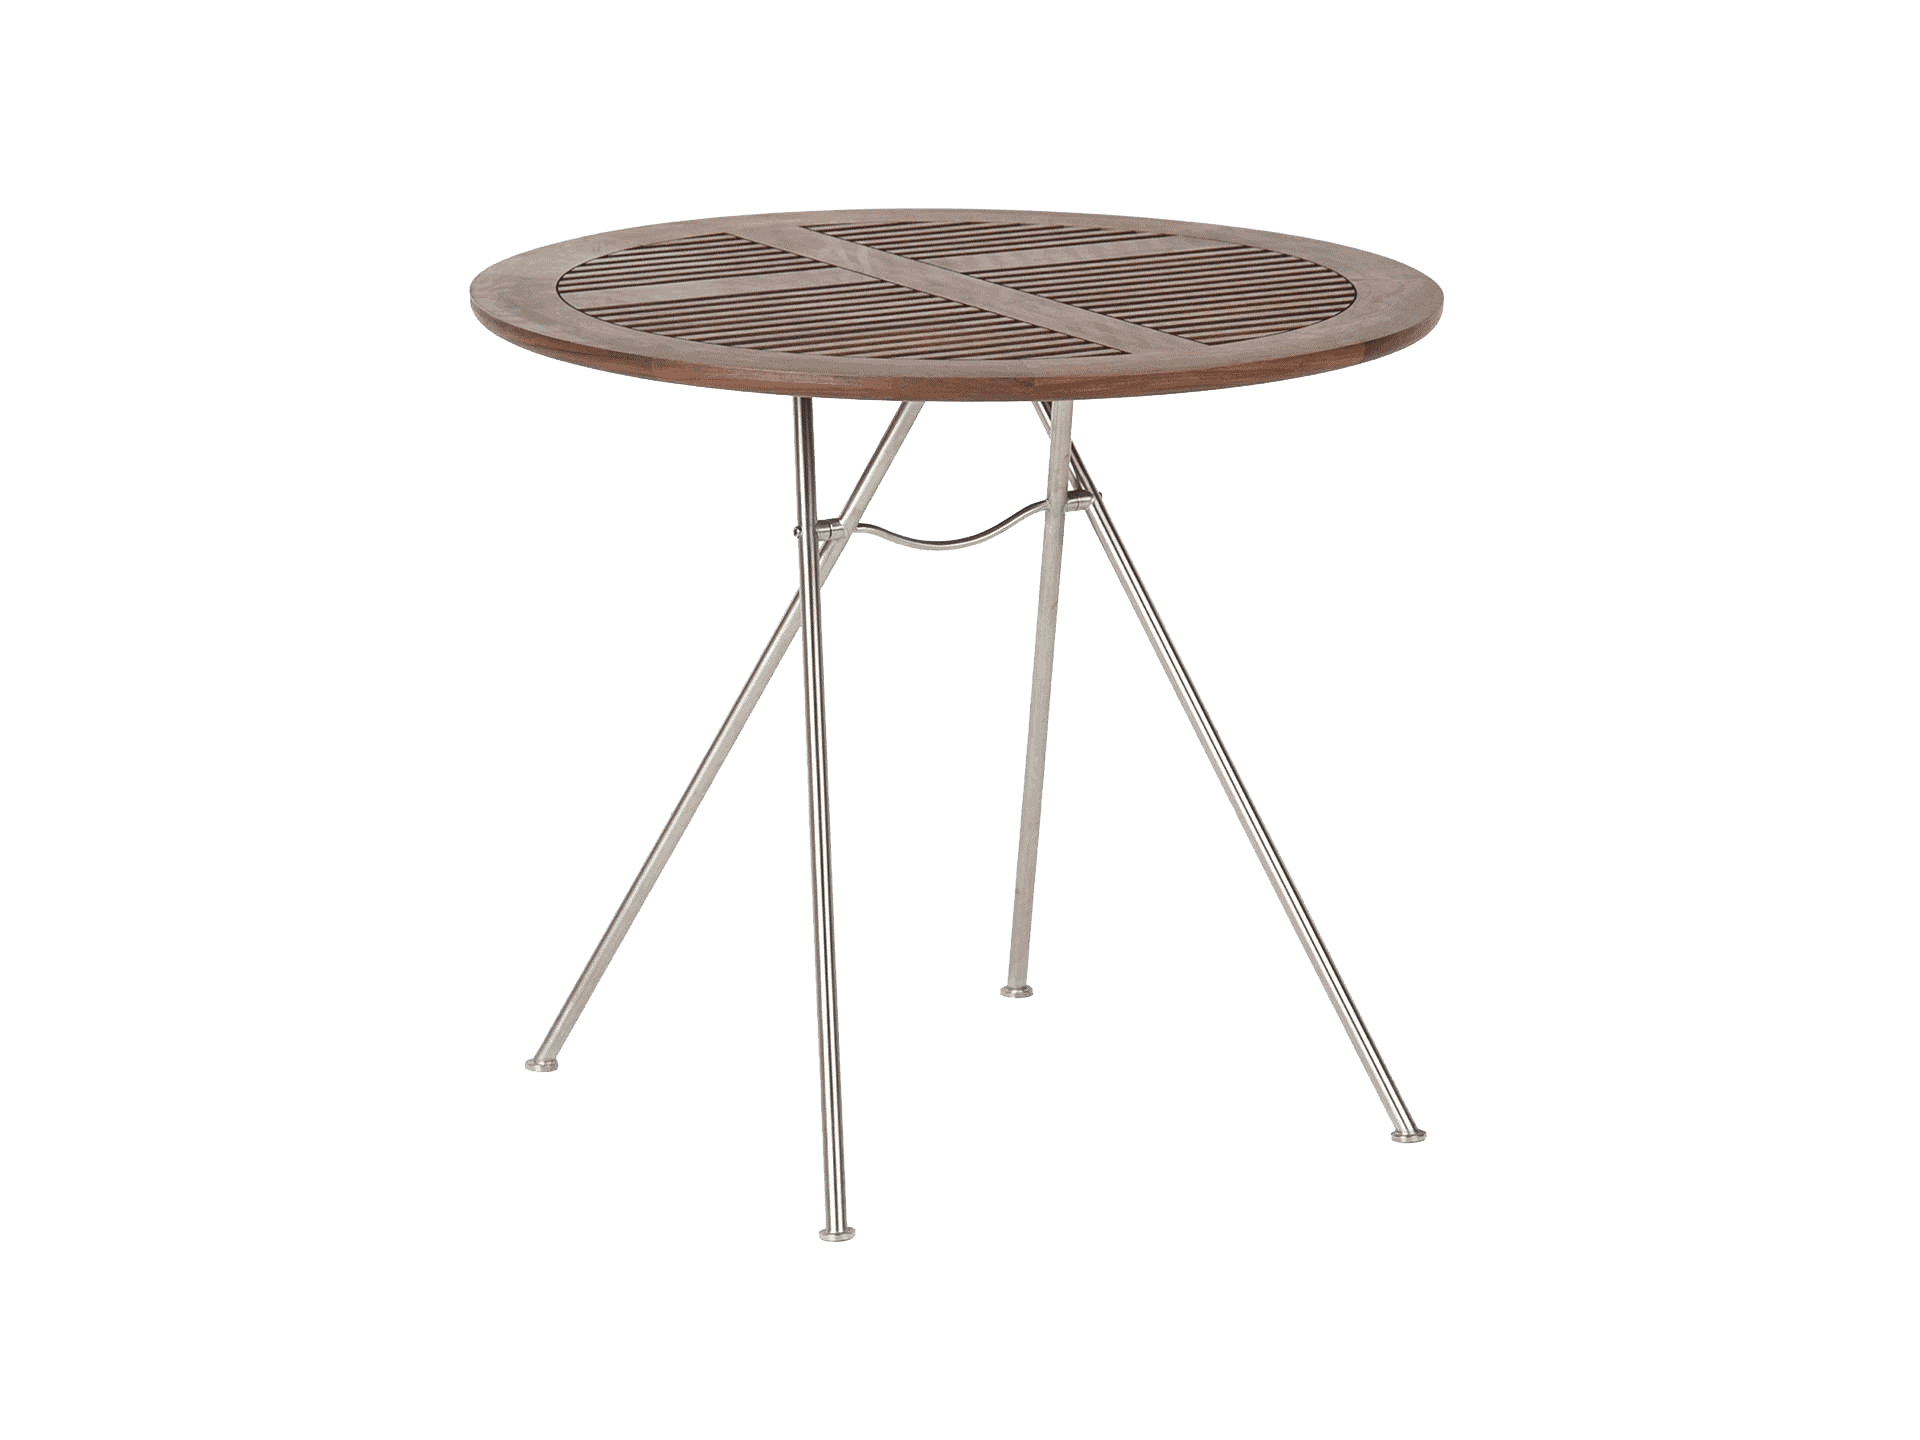 Kaffe bistro folding table assembled